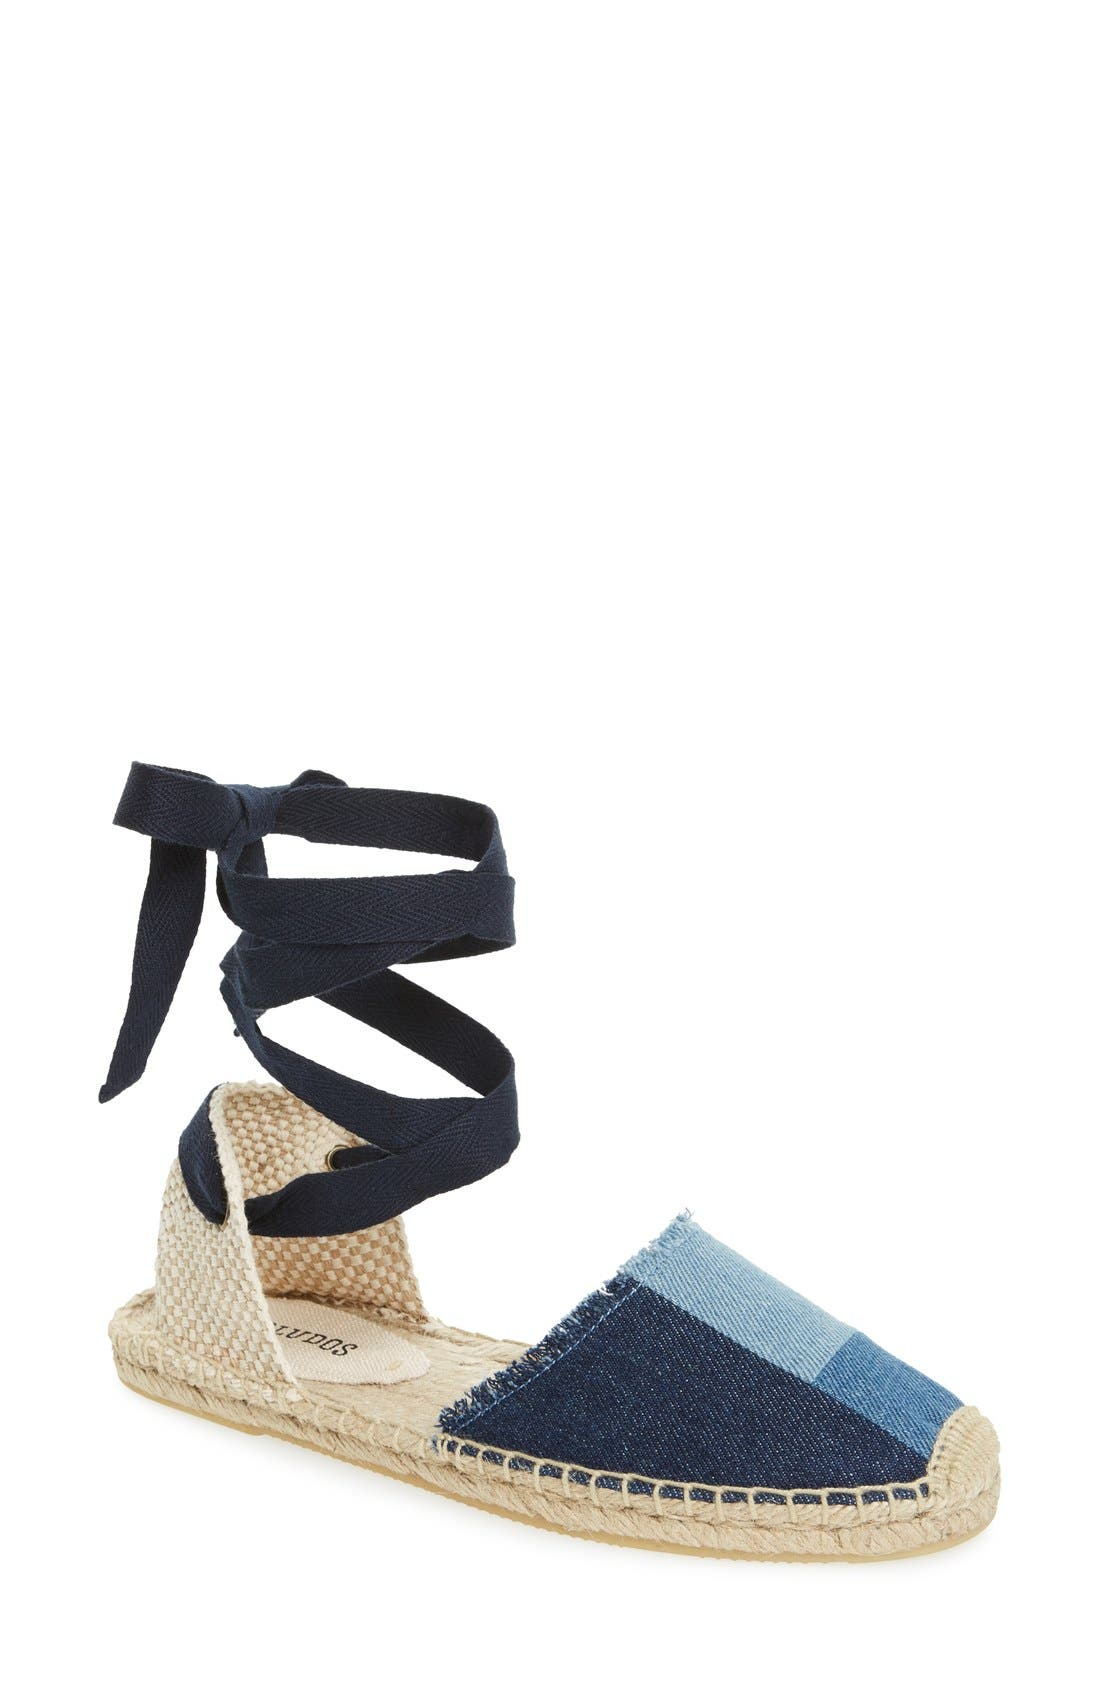 Soludos Patchwork Ankle Wrap Espadrille (Women)